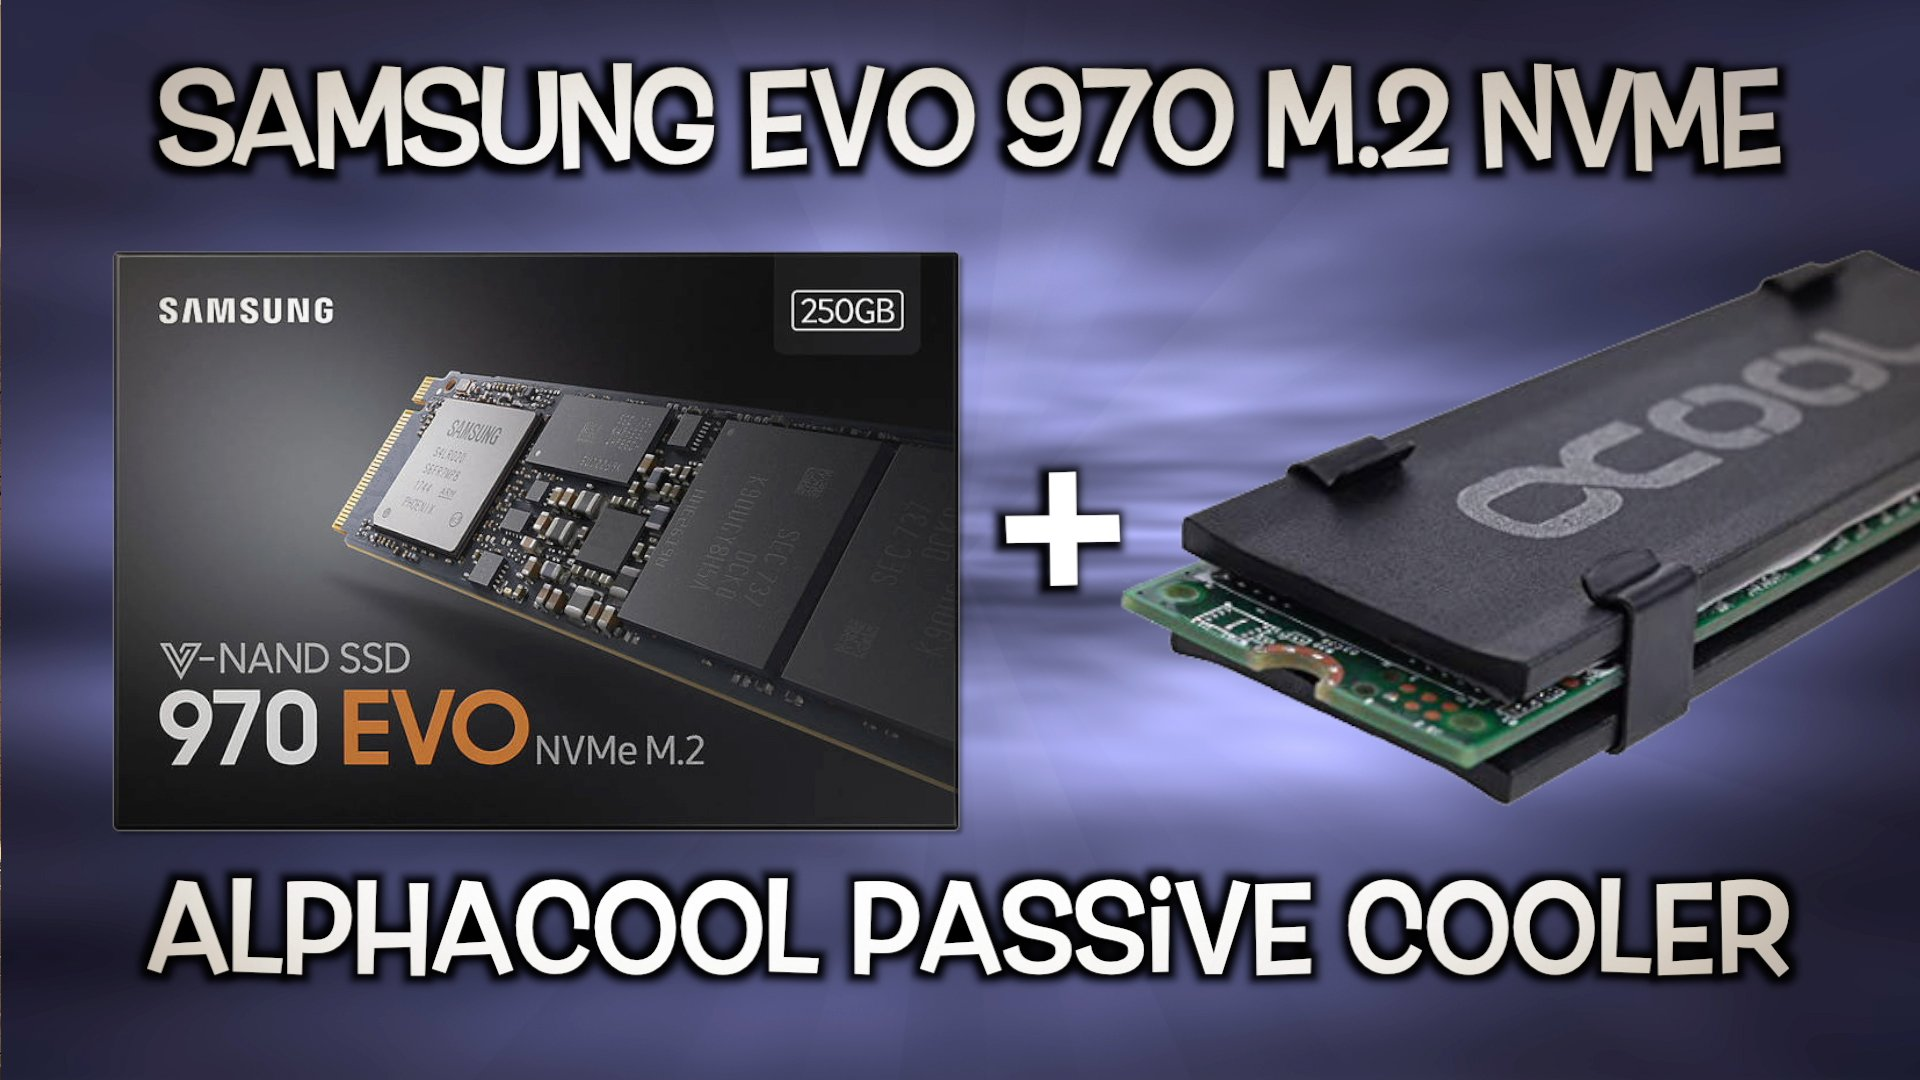 Passive Cooler for M.2 NVME SSD | Unboxing + Installation + Temp Results